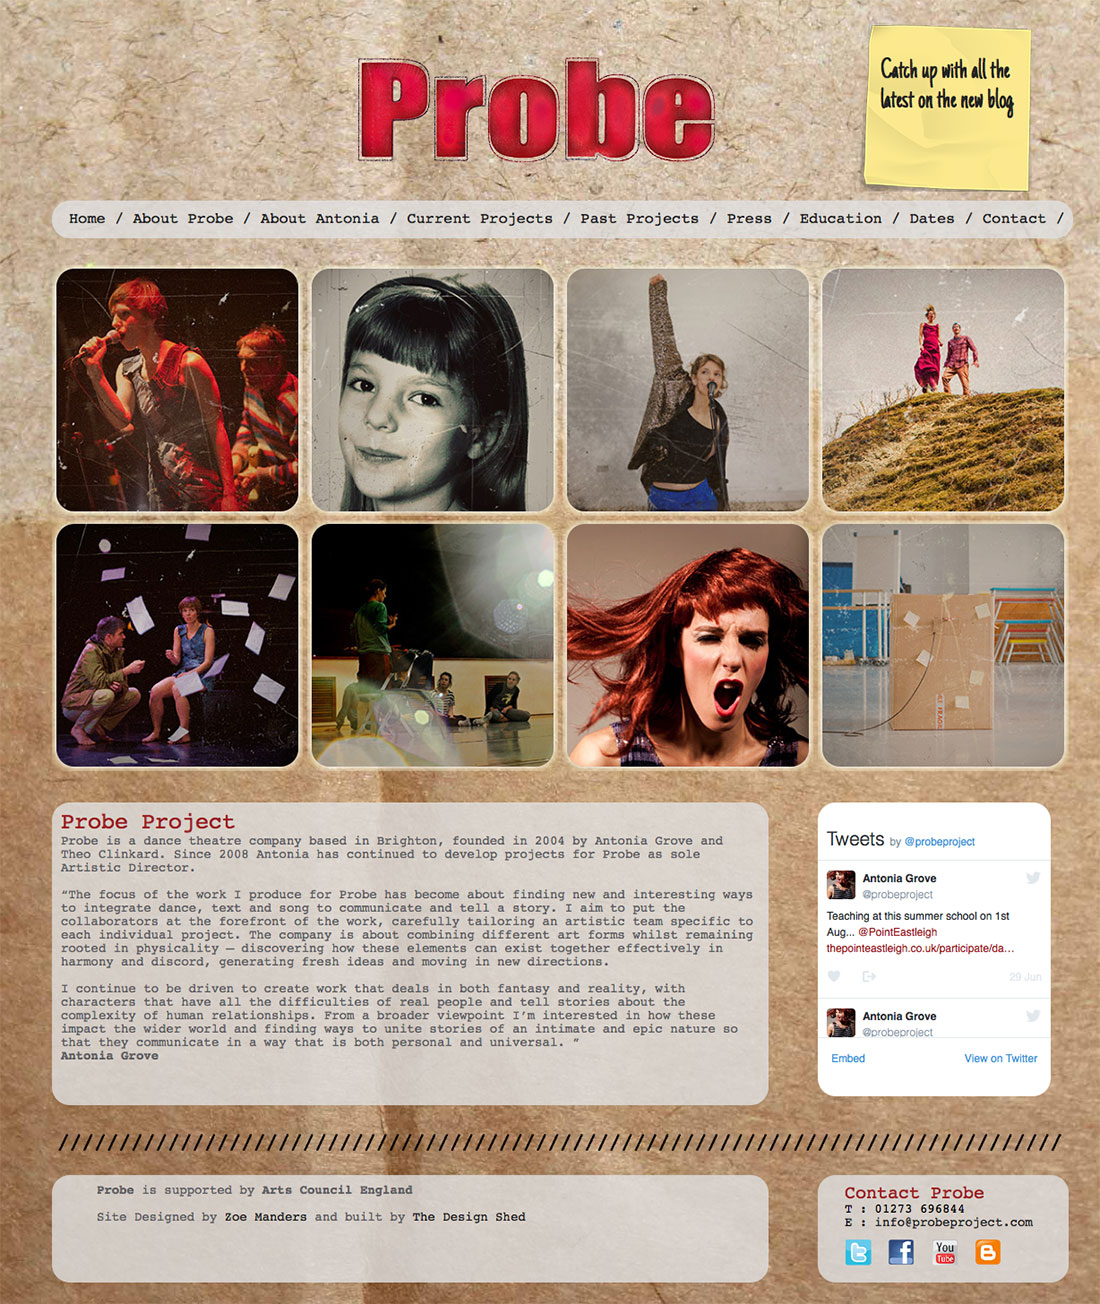 Probe Project Website